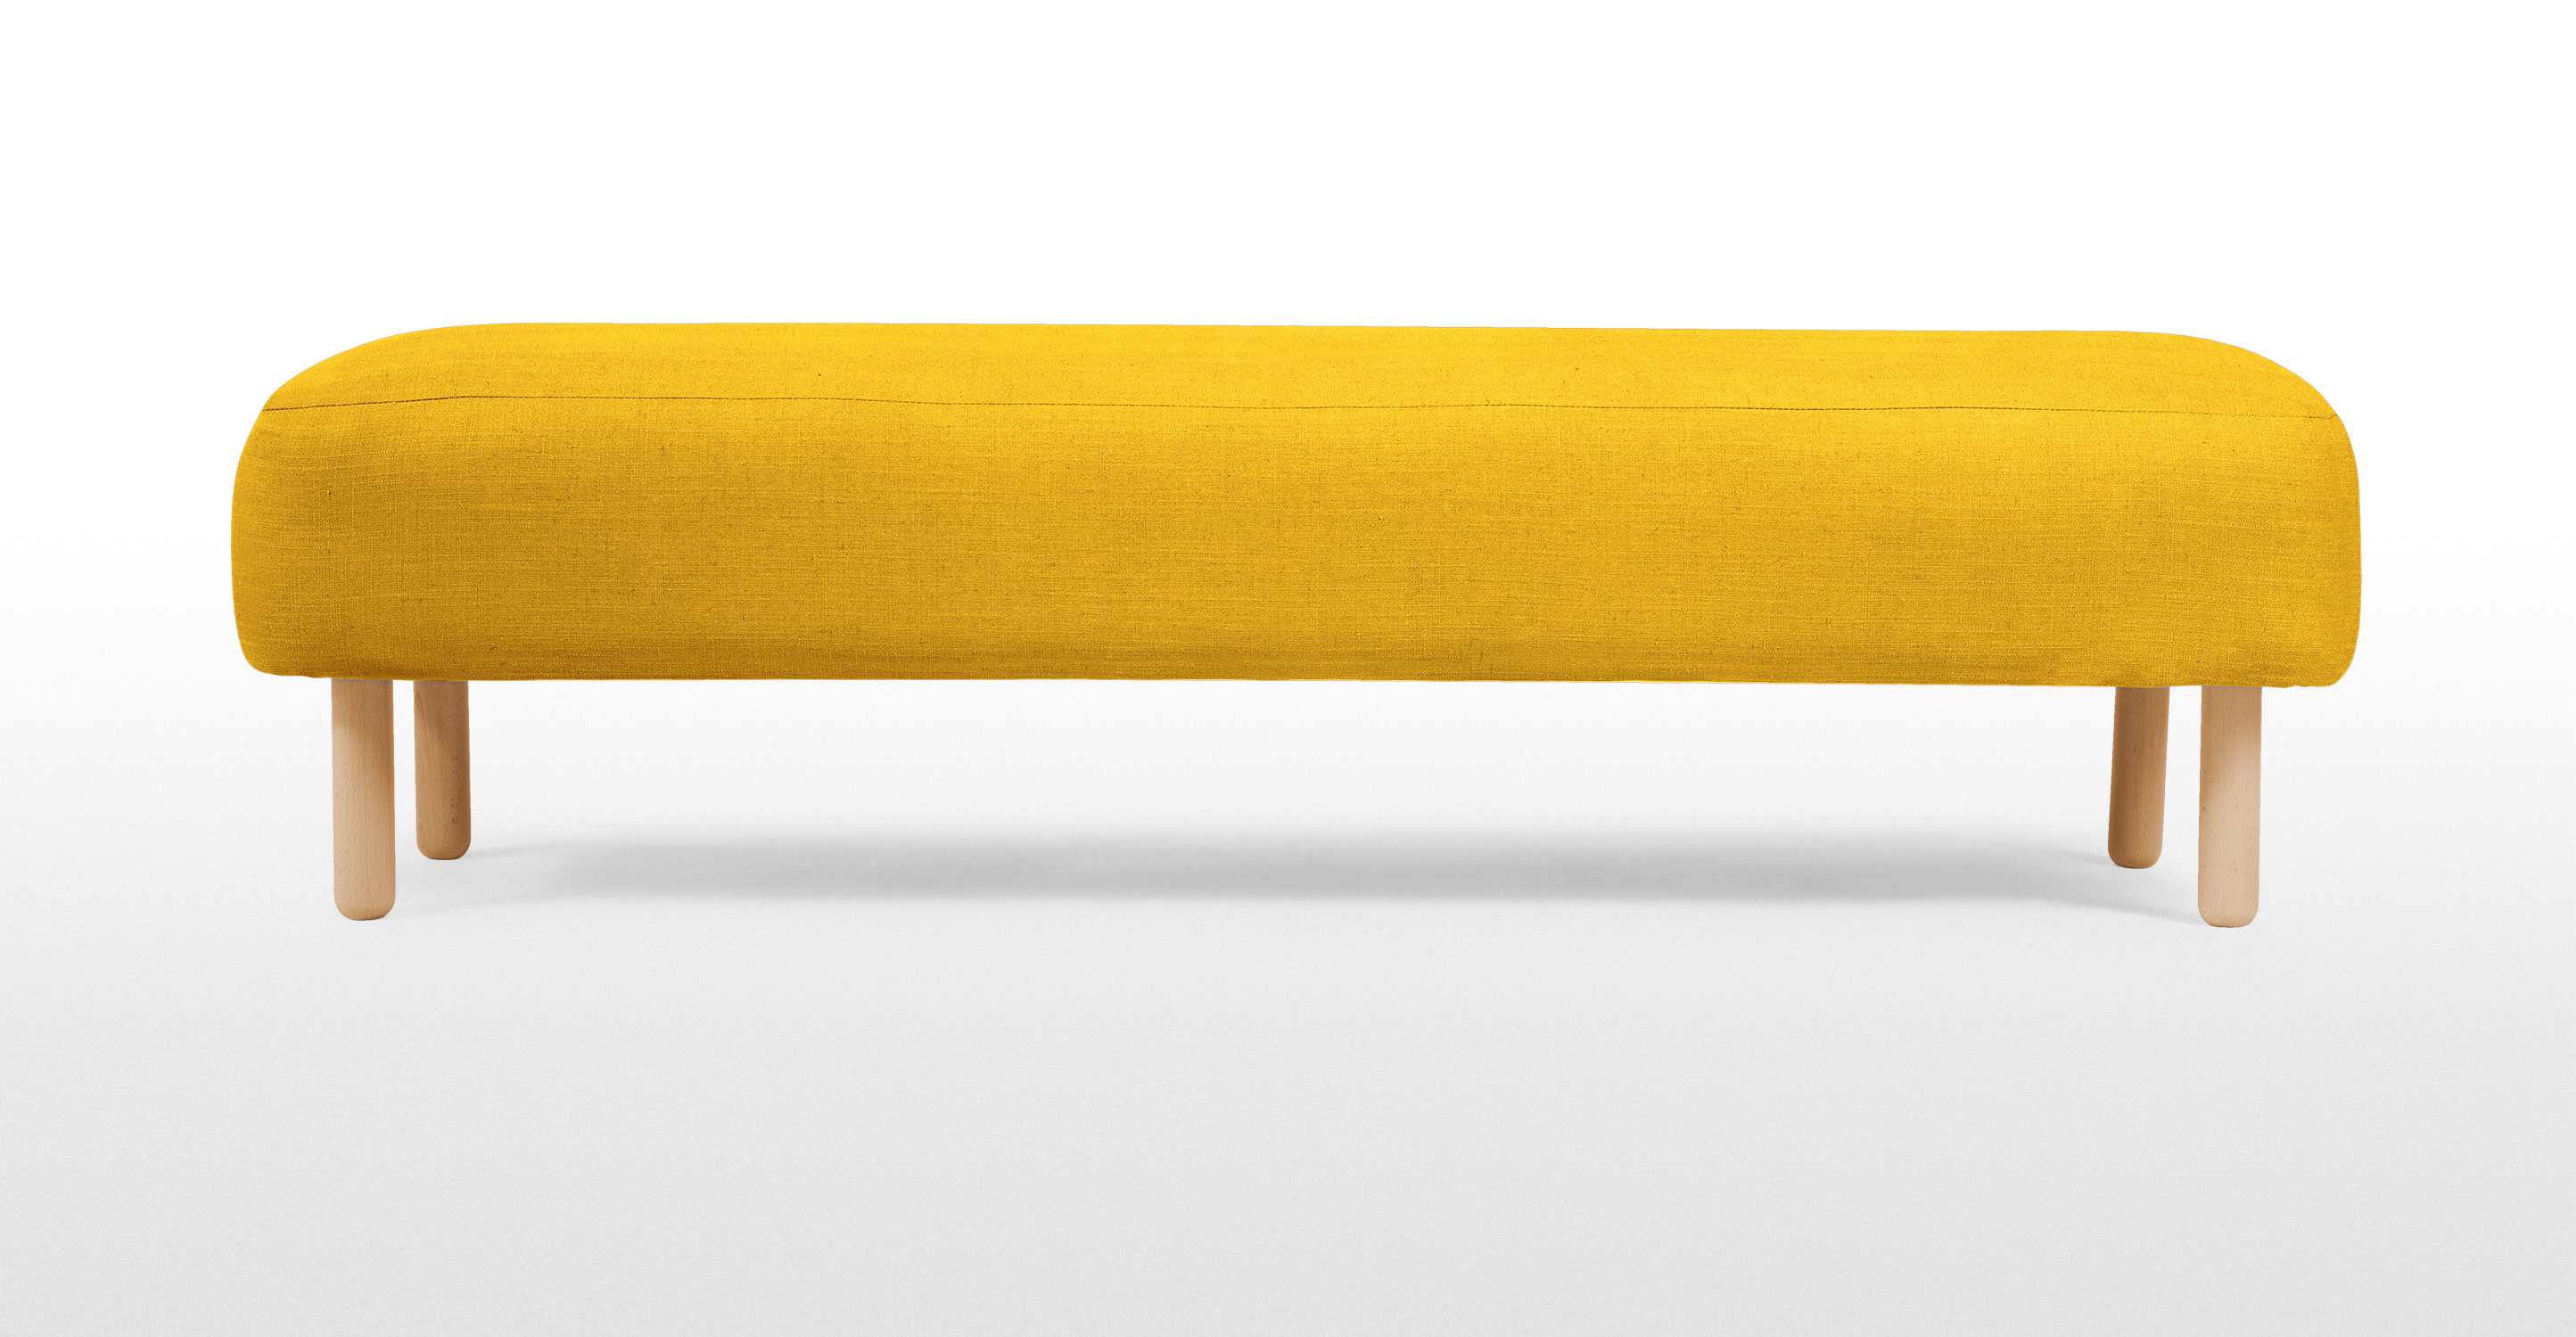 Jonah upholstered bench in dandelion yellow Upholstered benches